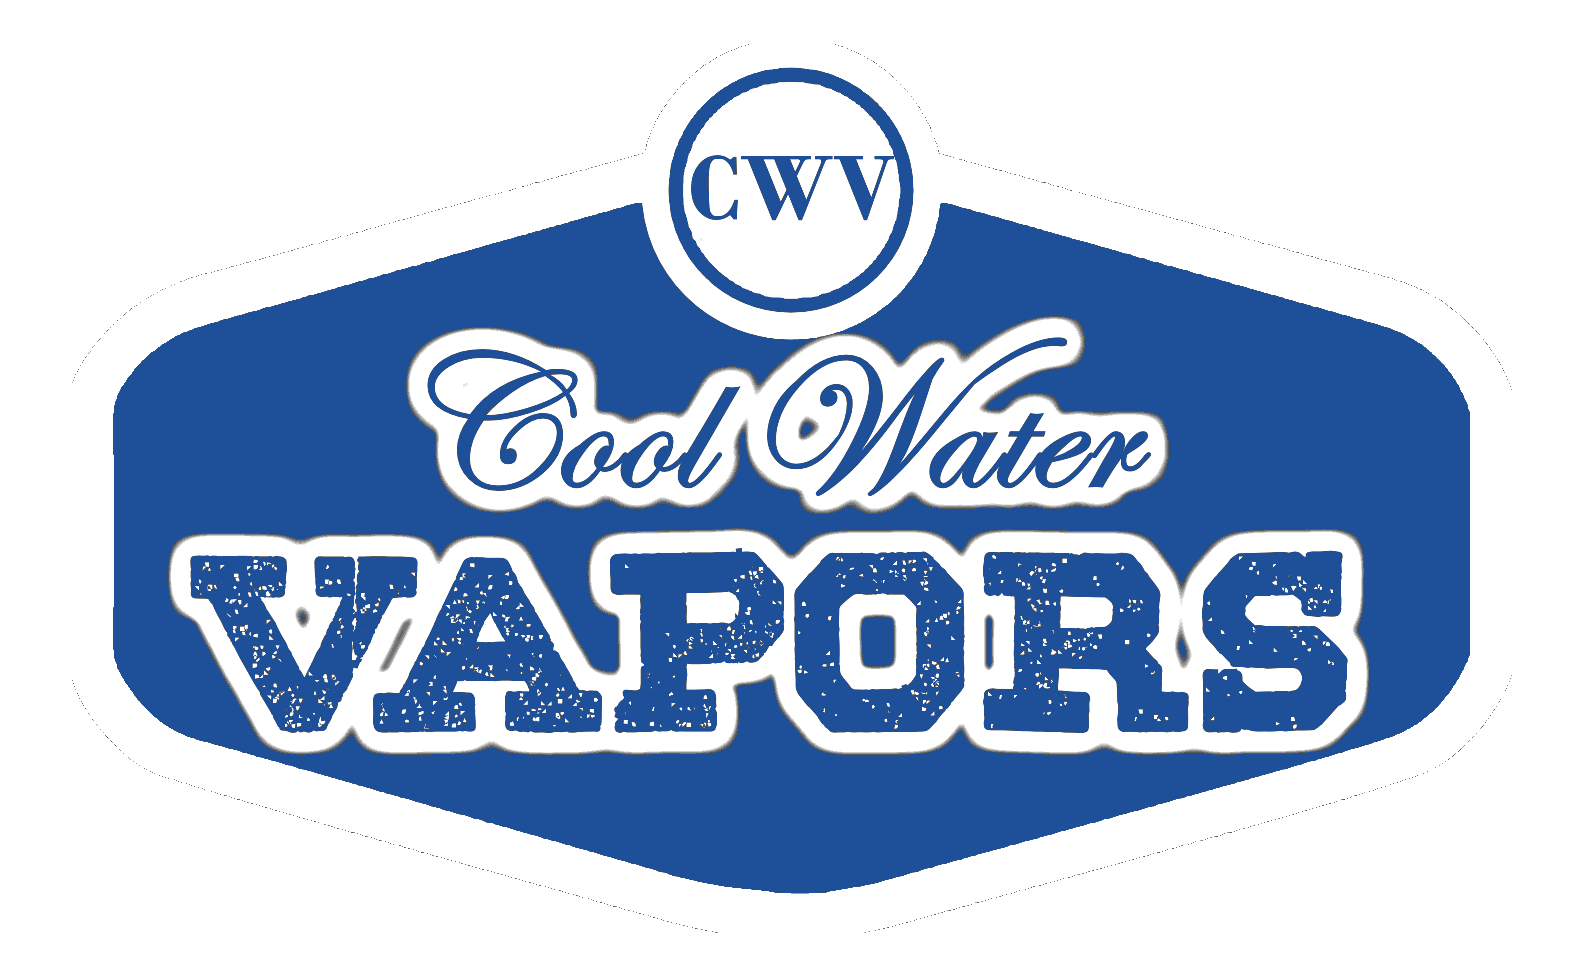 Cool Water Vapors & CBD